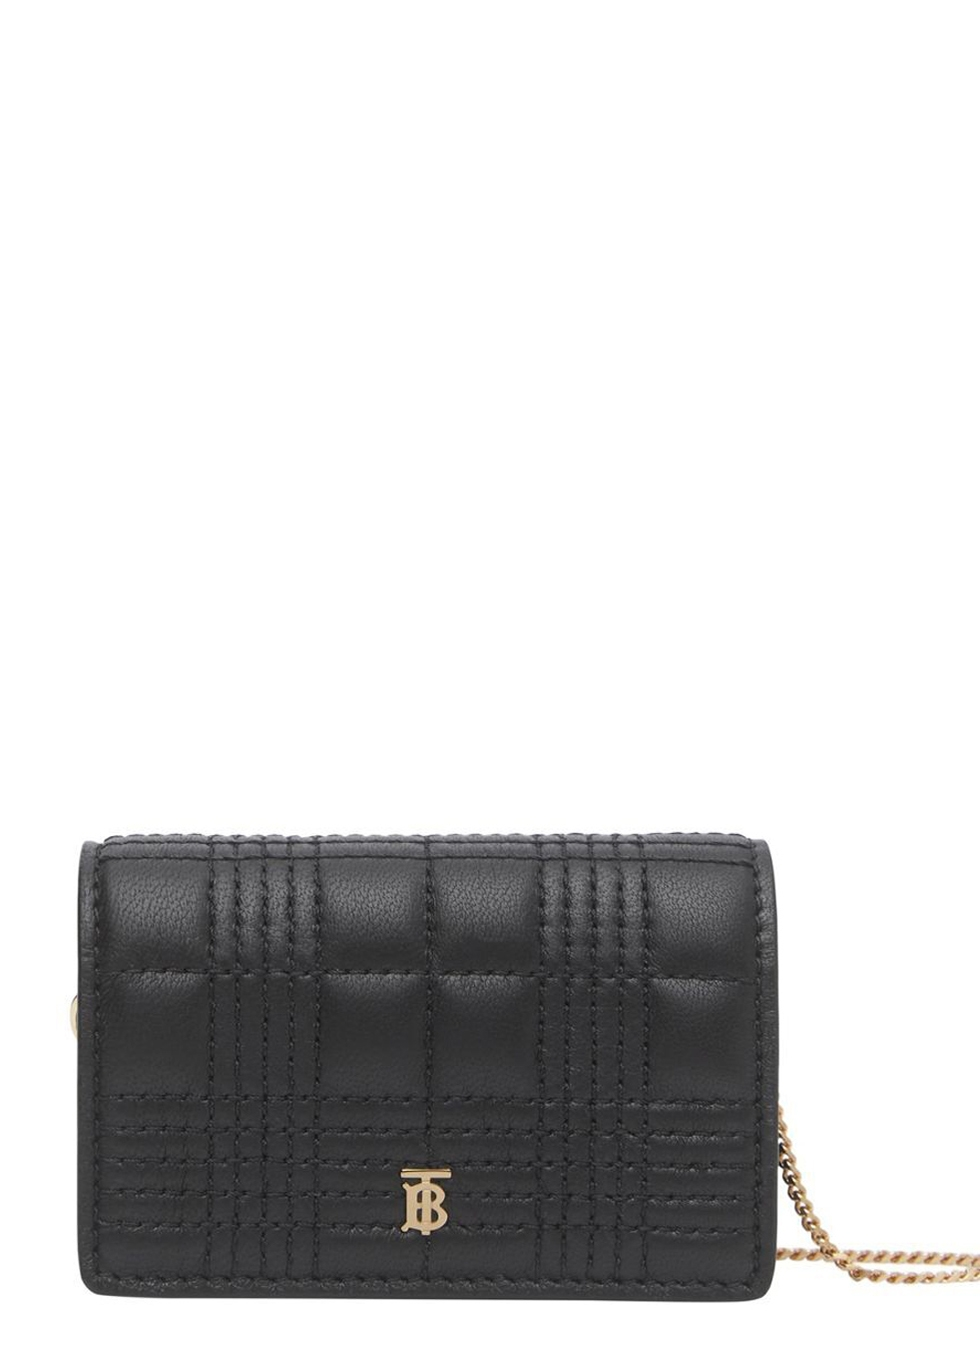 Jessie black leather card holder with chain